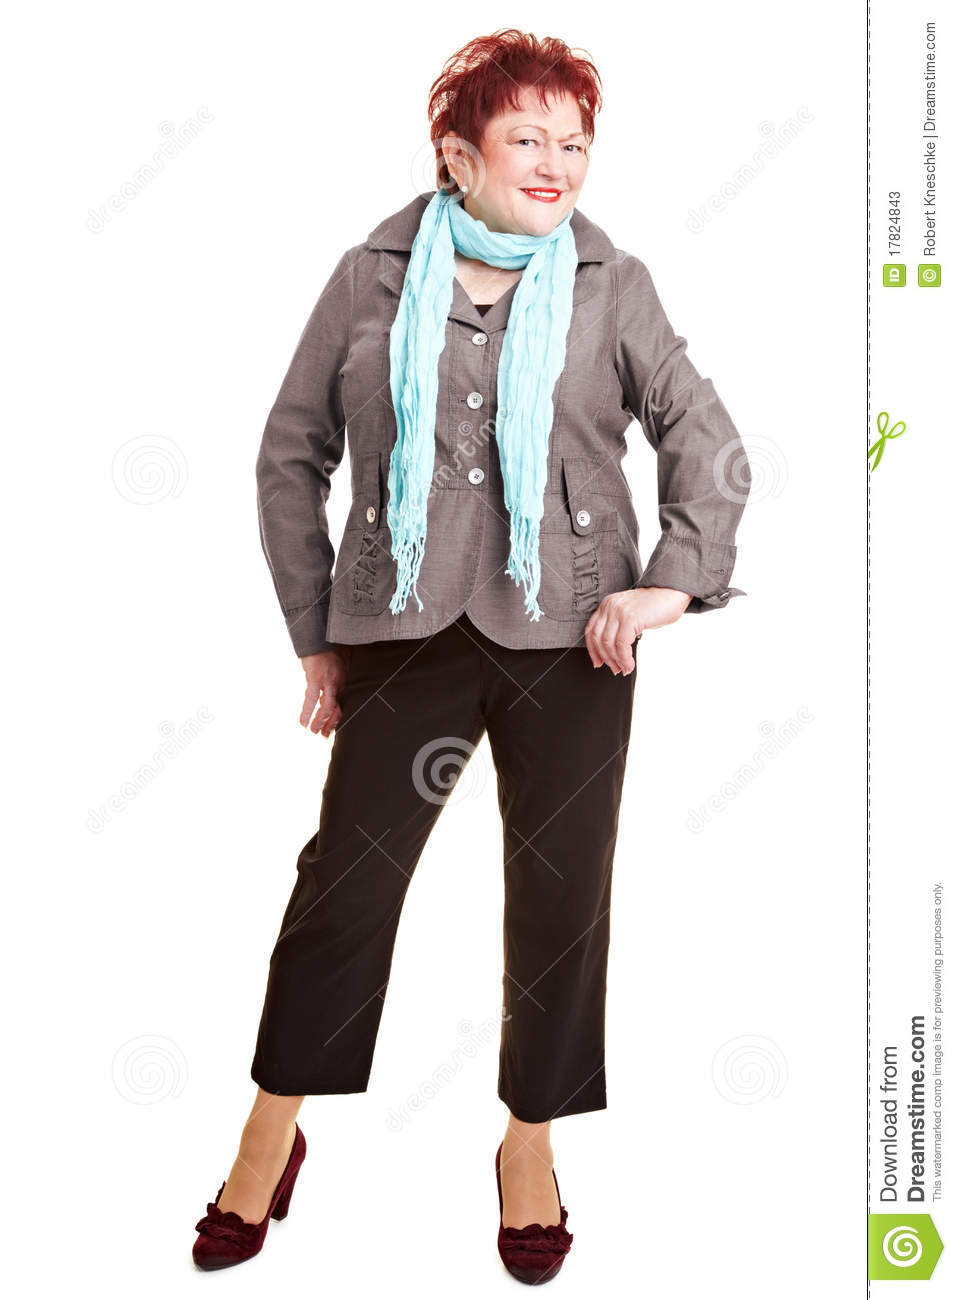 Senior Plus Size Fashion Model Stock Image